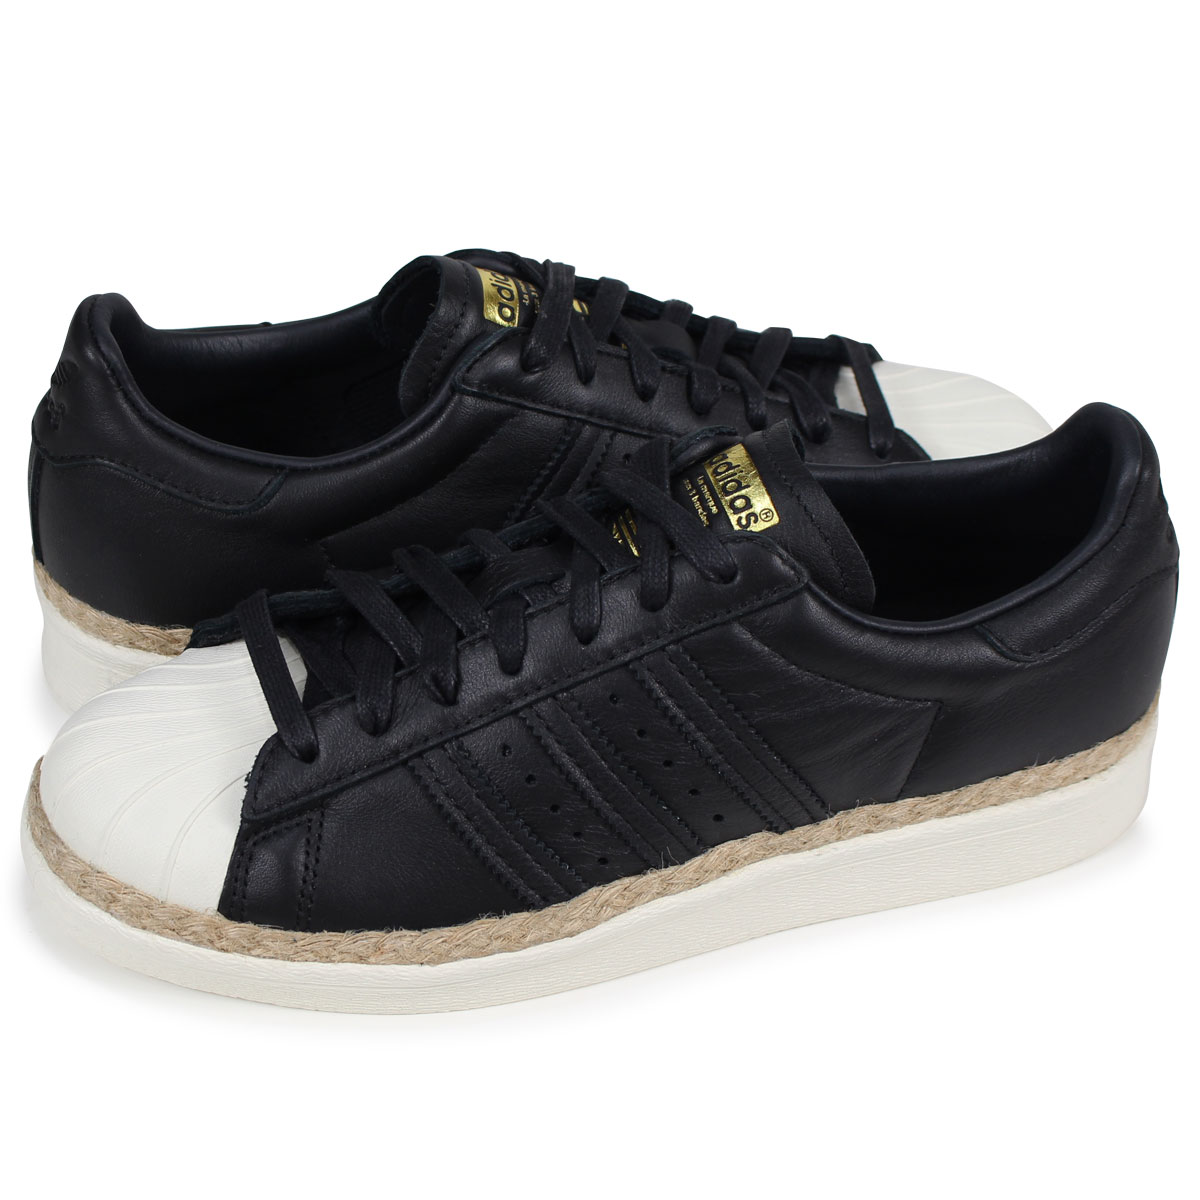 newest 3765e 948f0 adidas Originals SUPERSTAR NEW BOLD W superstar 80s Adidas originals Lady's  sneakers CQ2365 black